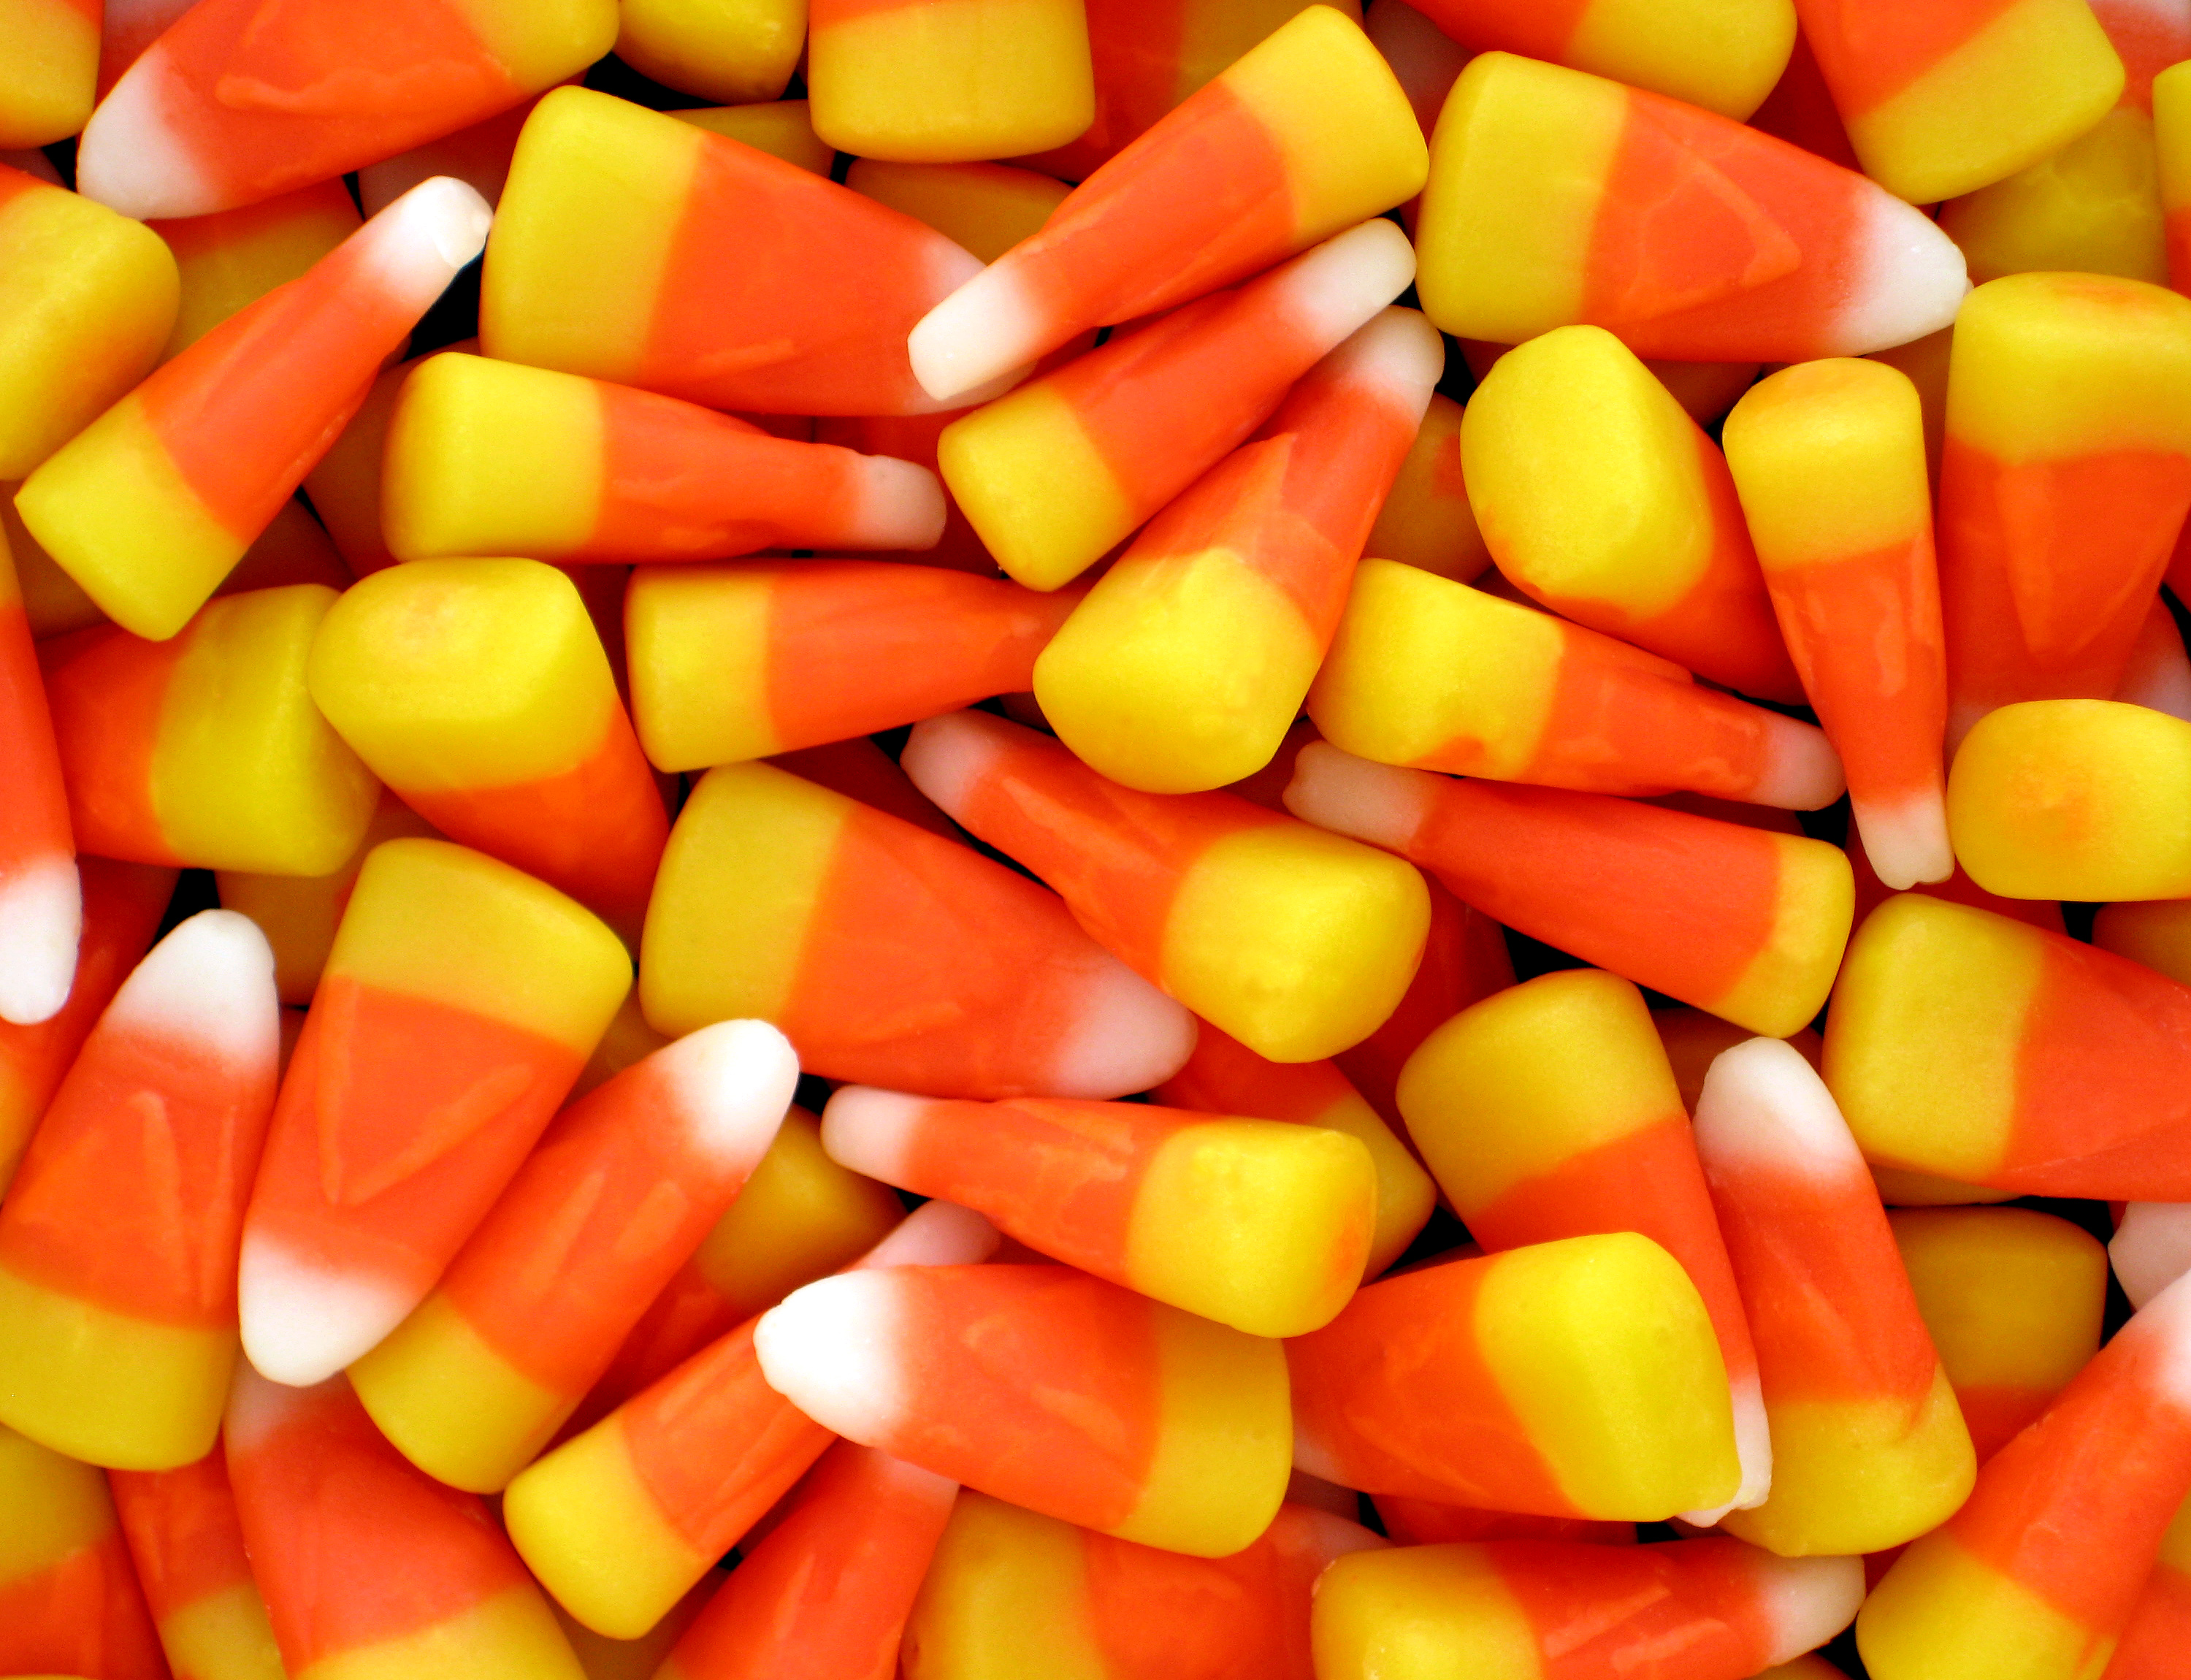 100 best popular candies how many have you eaten - Top Ten Halloween Candies